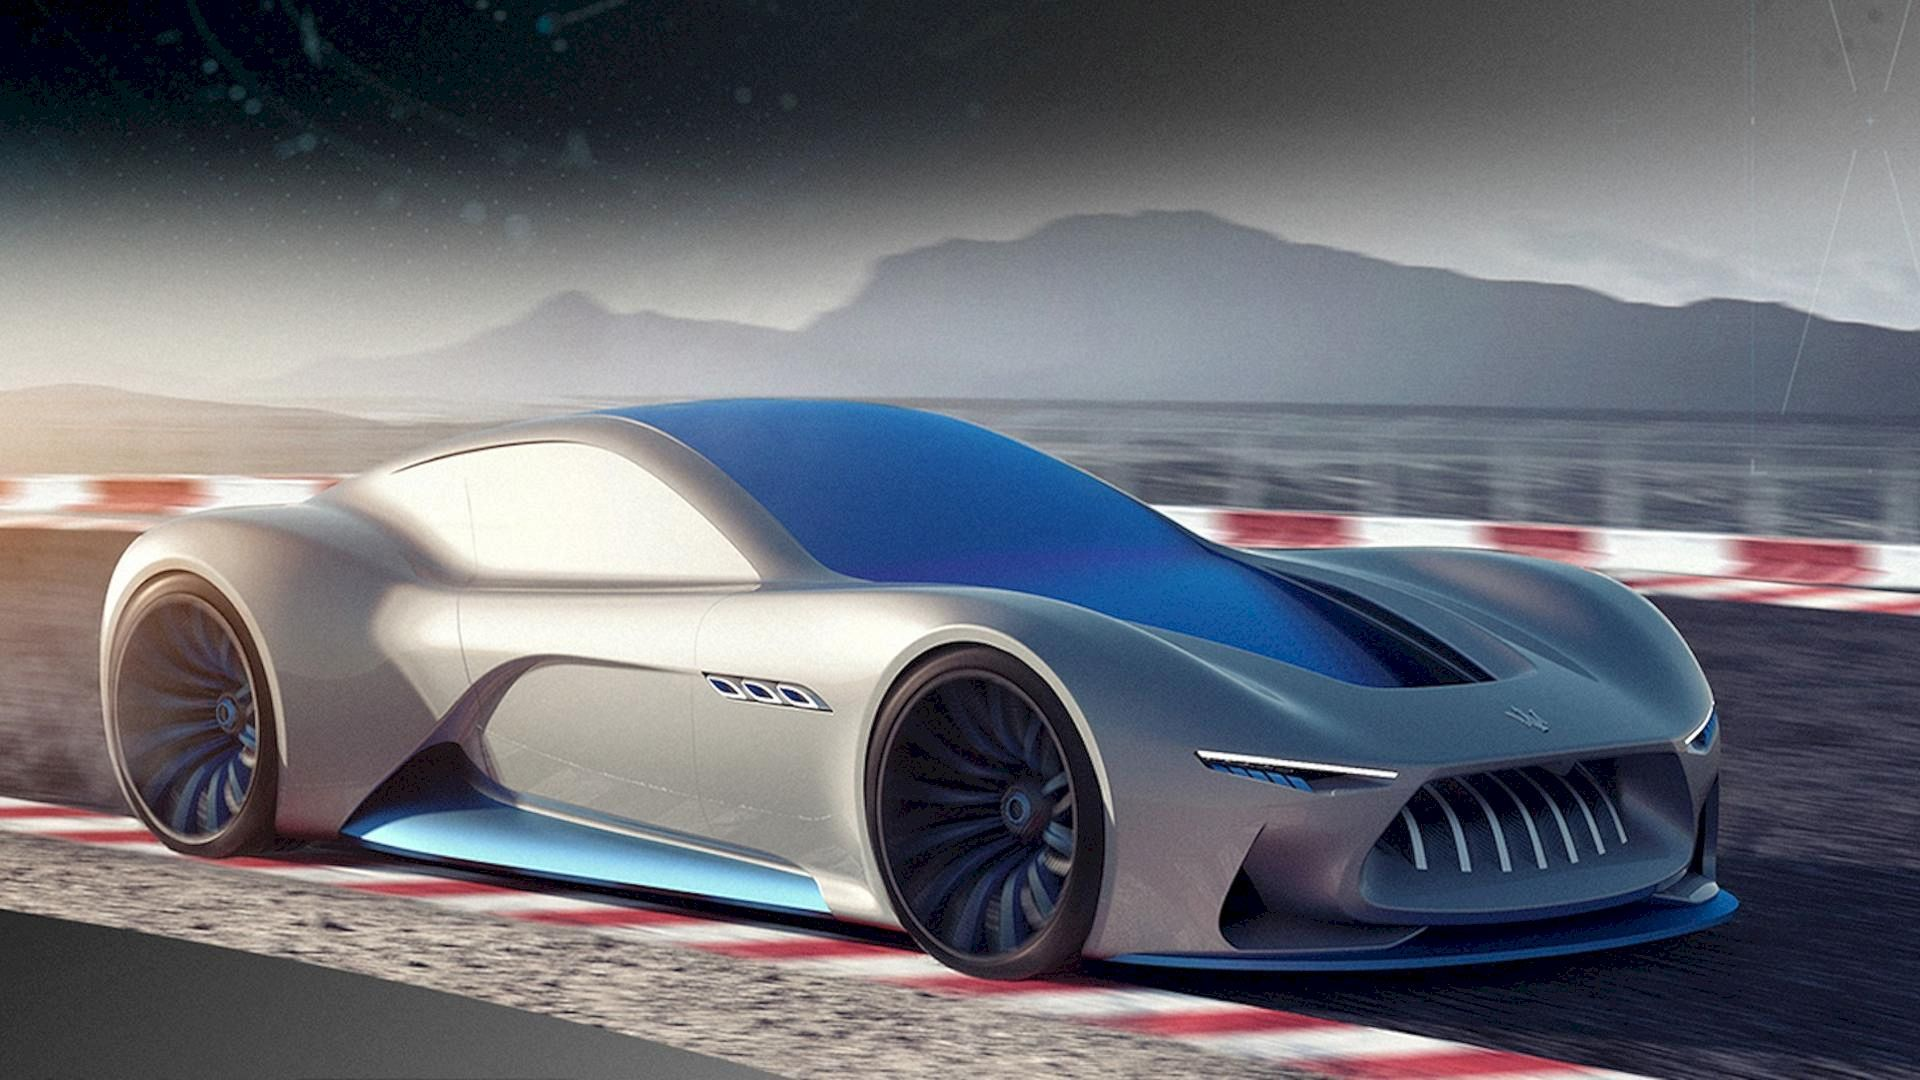 Yet Another Fabulous Concept Car Maserati Genesi Concept Cars